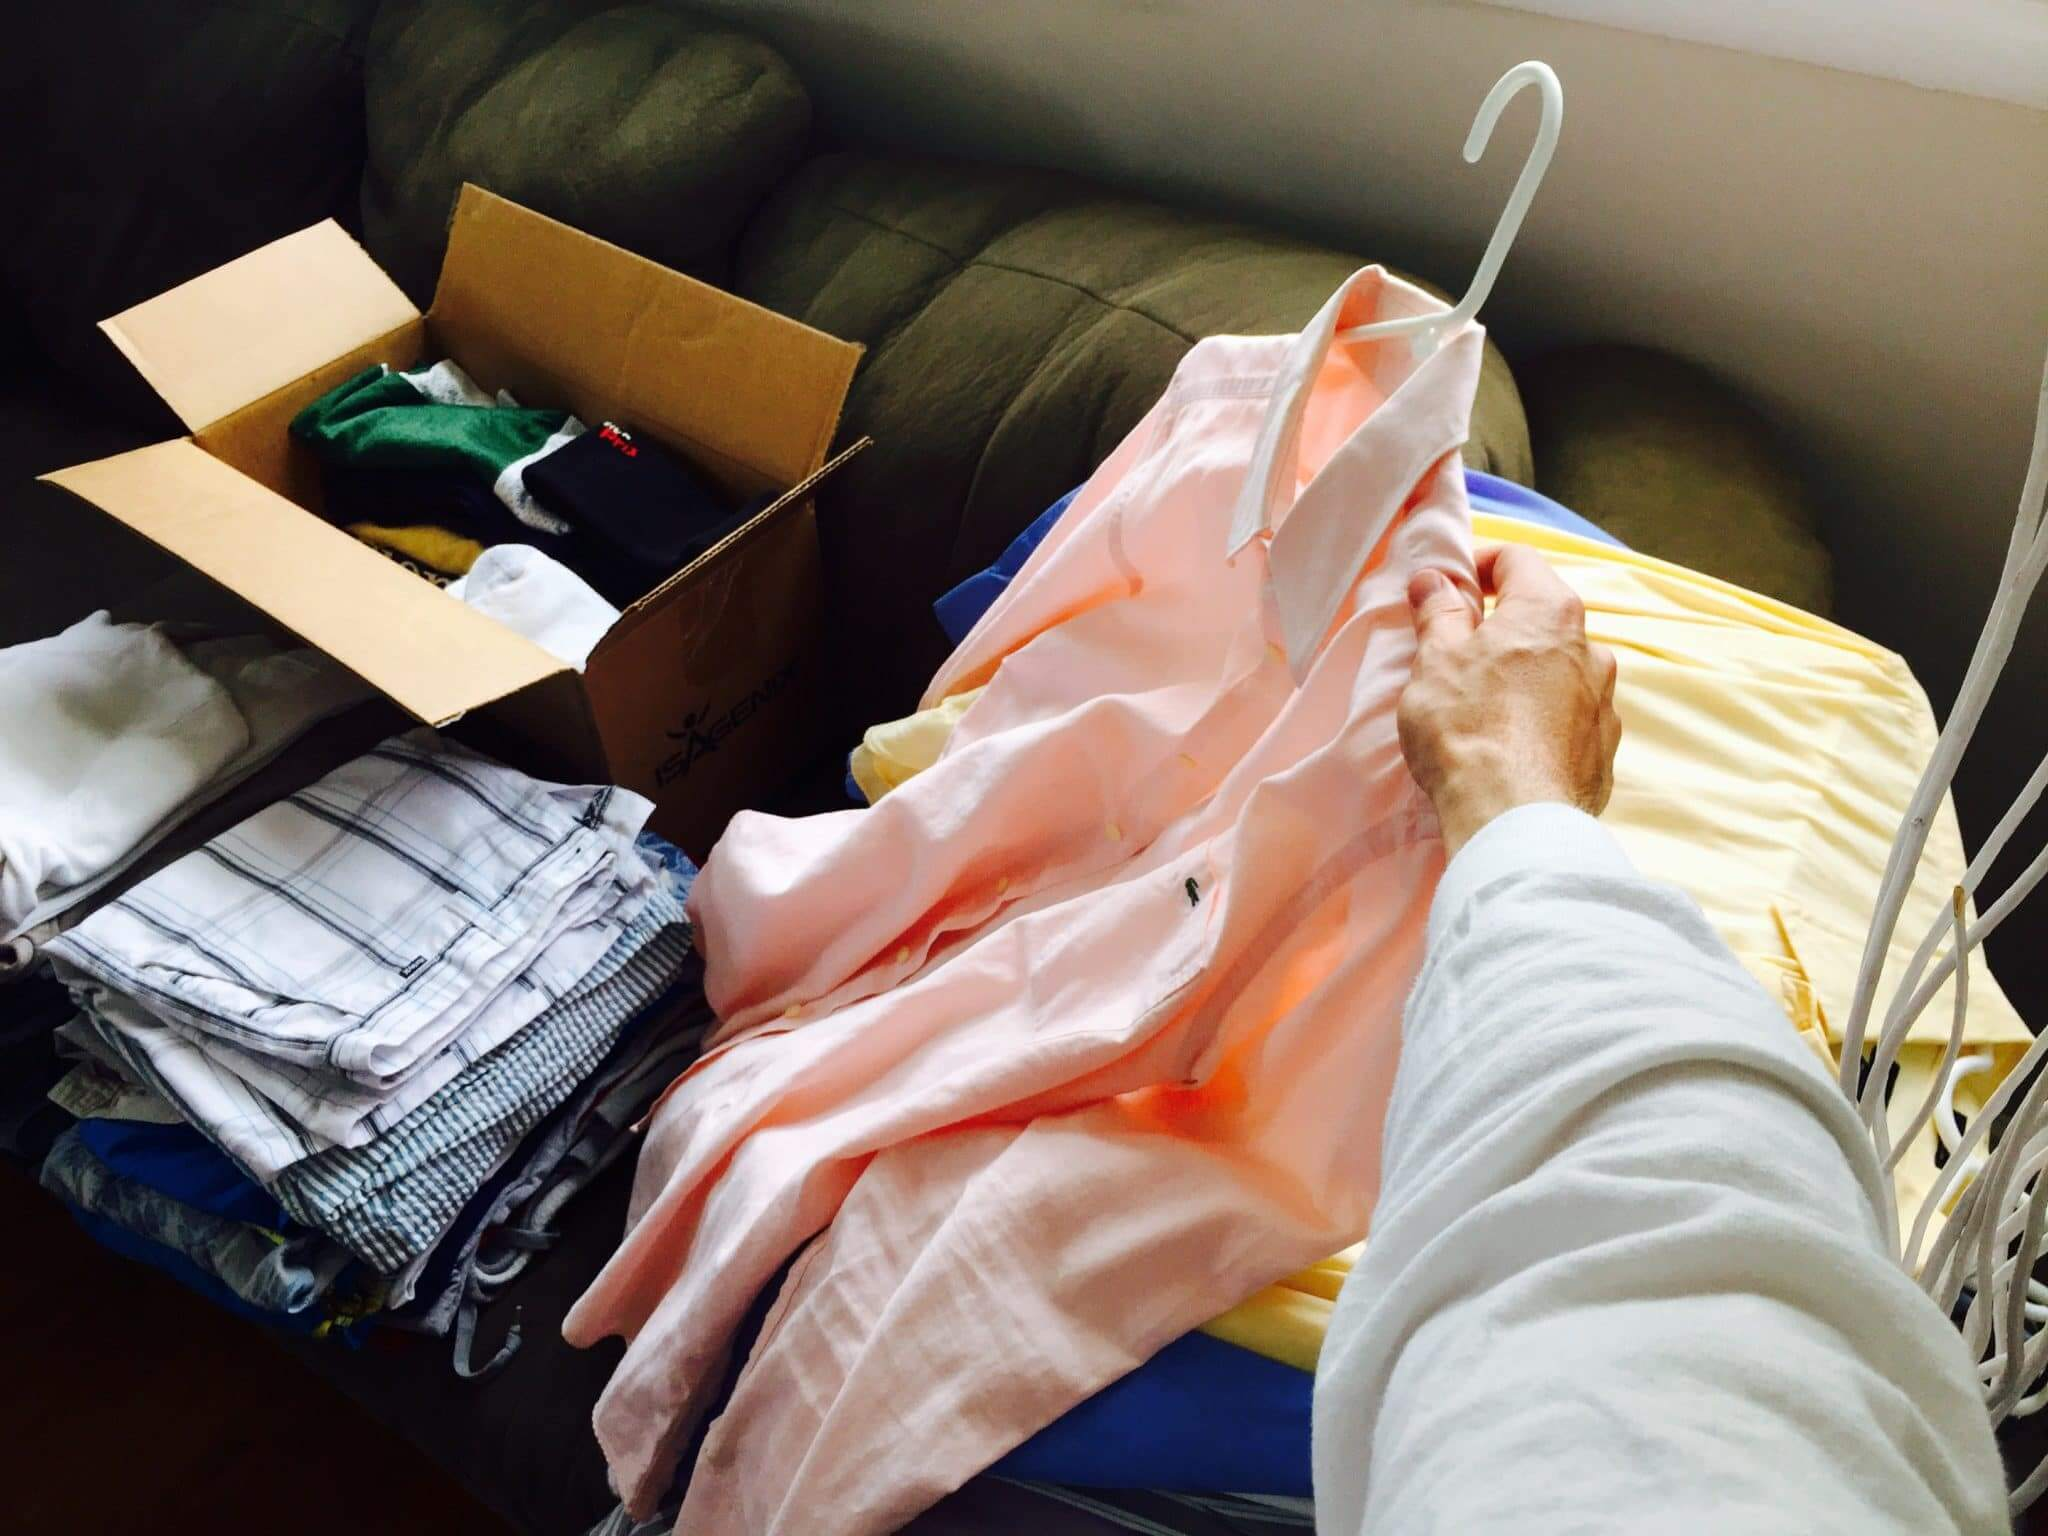 Sorting through clothes to downsize to full-tme RV